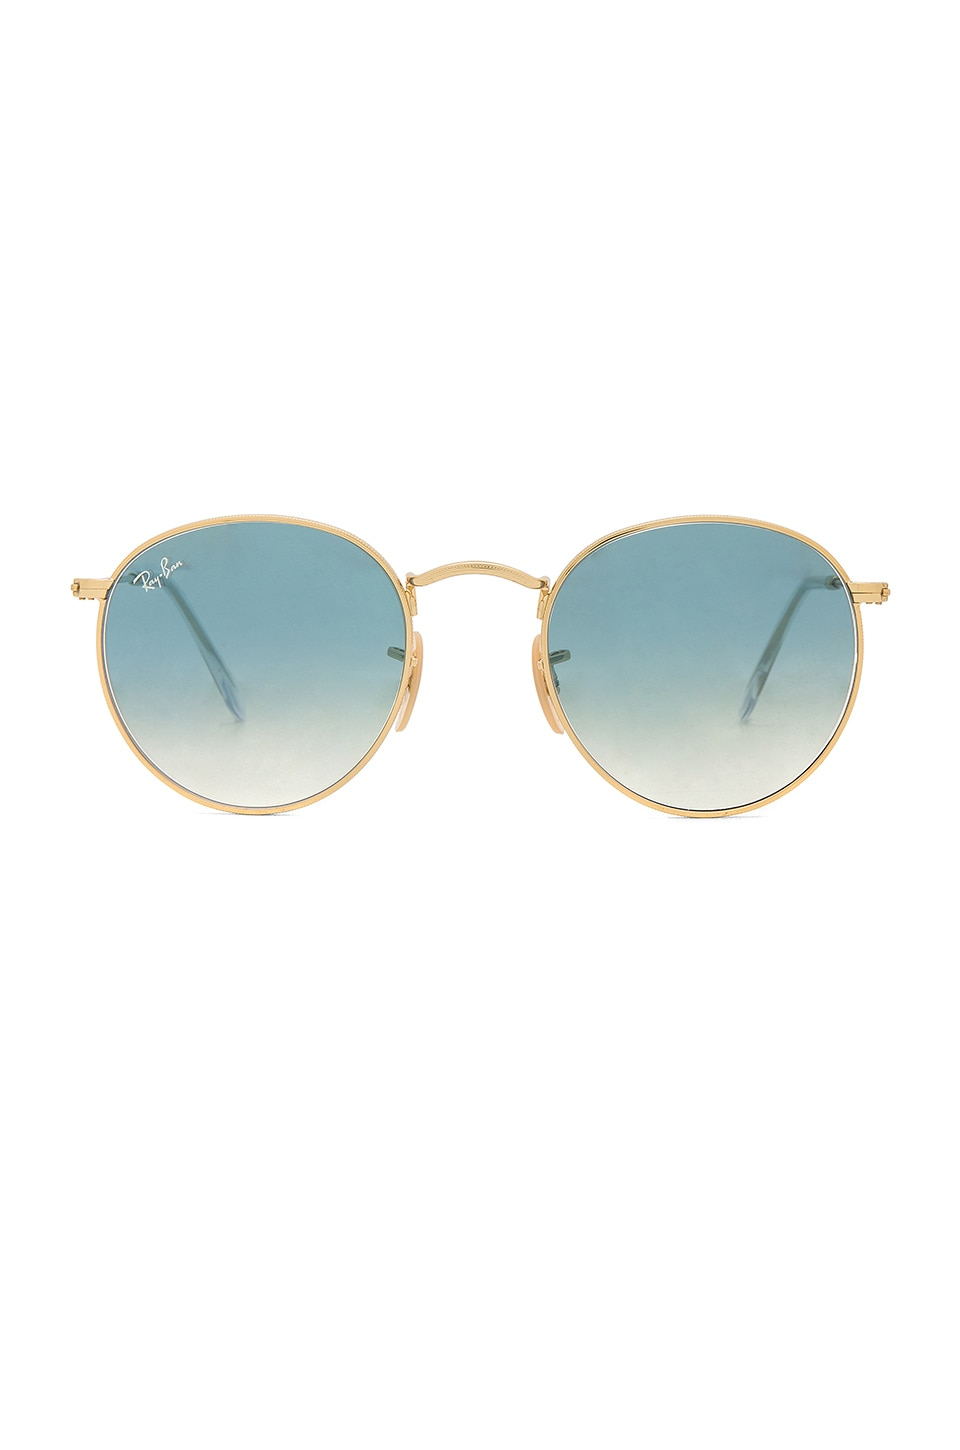 Ray-Ban Round Metal in Gold & Light Blue Gradient